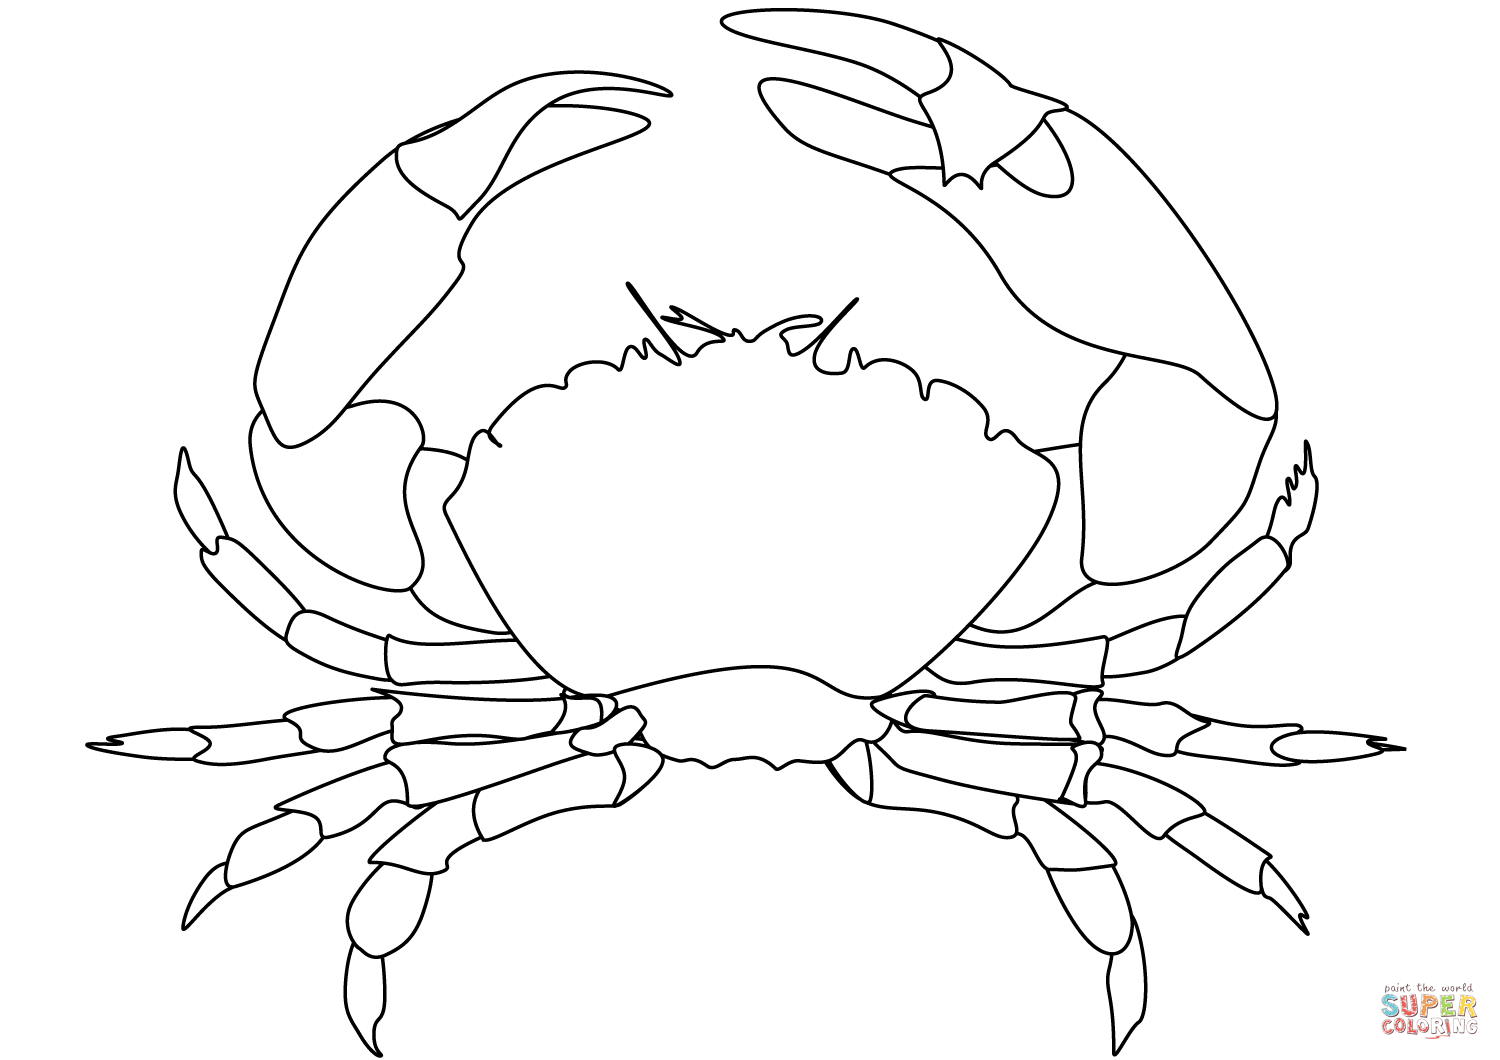 1500x1060 Crab Coloring Page Free Printable Coloring Pages